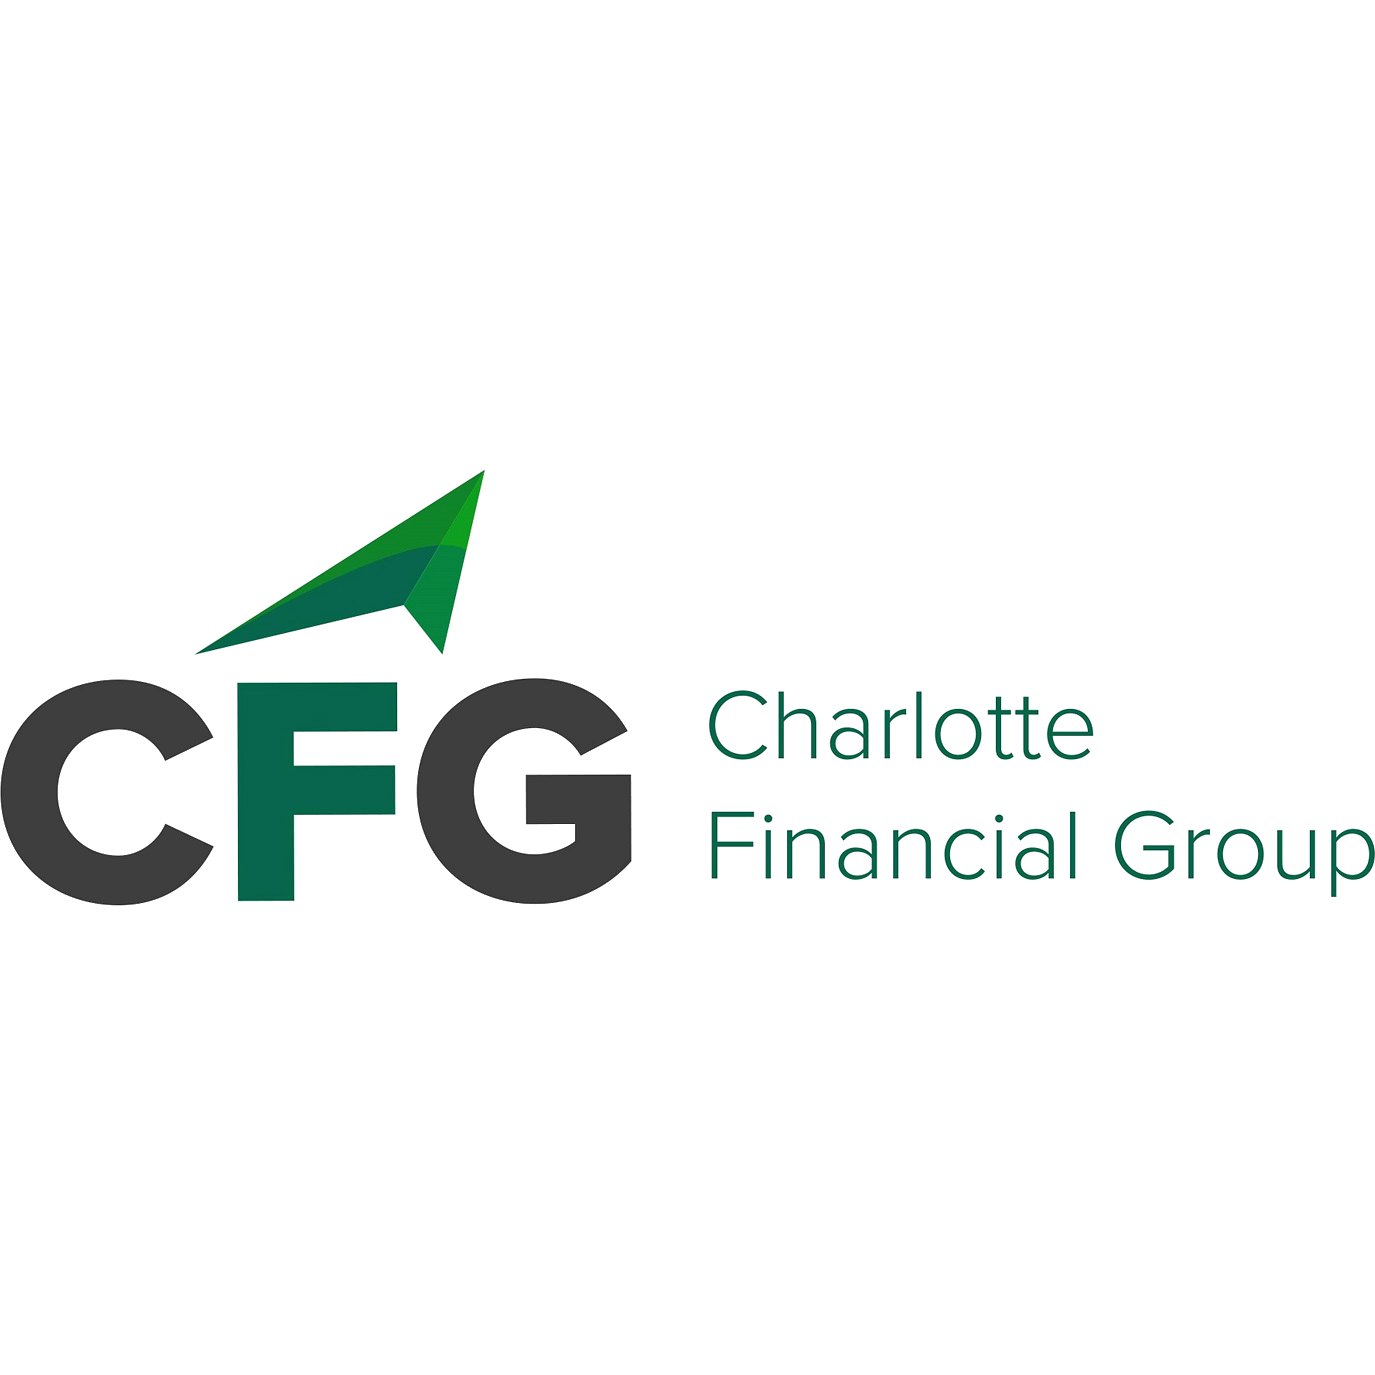 Charlotte Financial Group